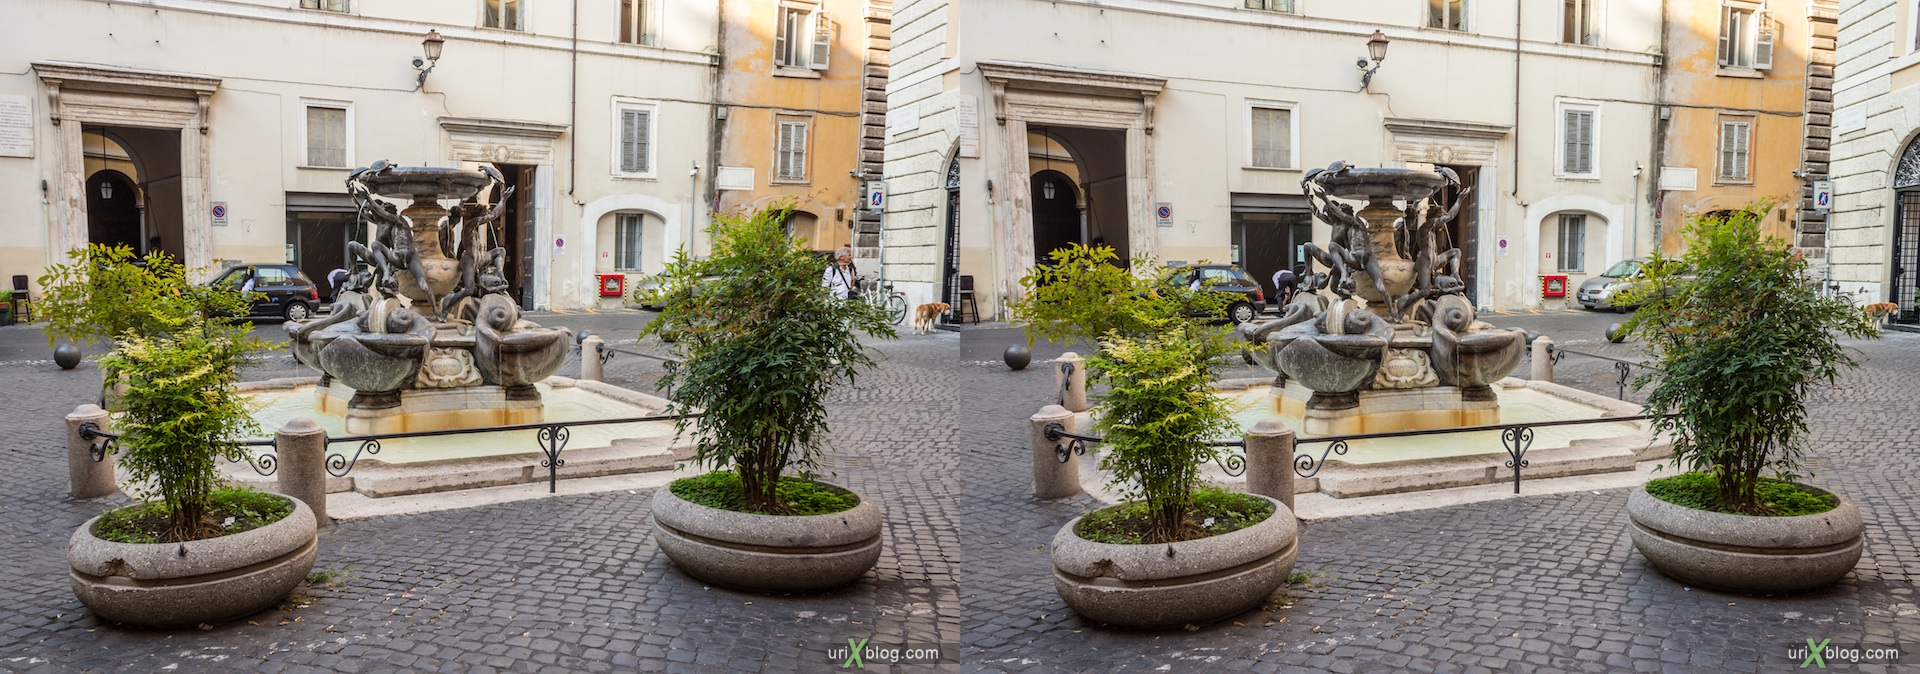 2012, Turtle fountain, Rome, Italy, 3D, stereo pair, cross-eyed, crossview, cross view stereo pair